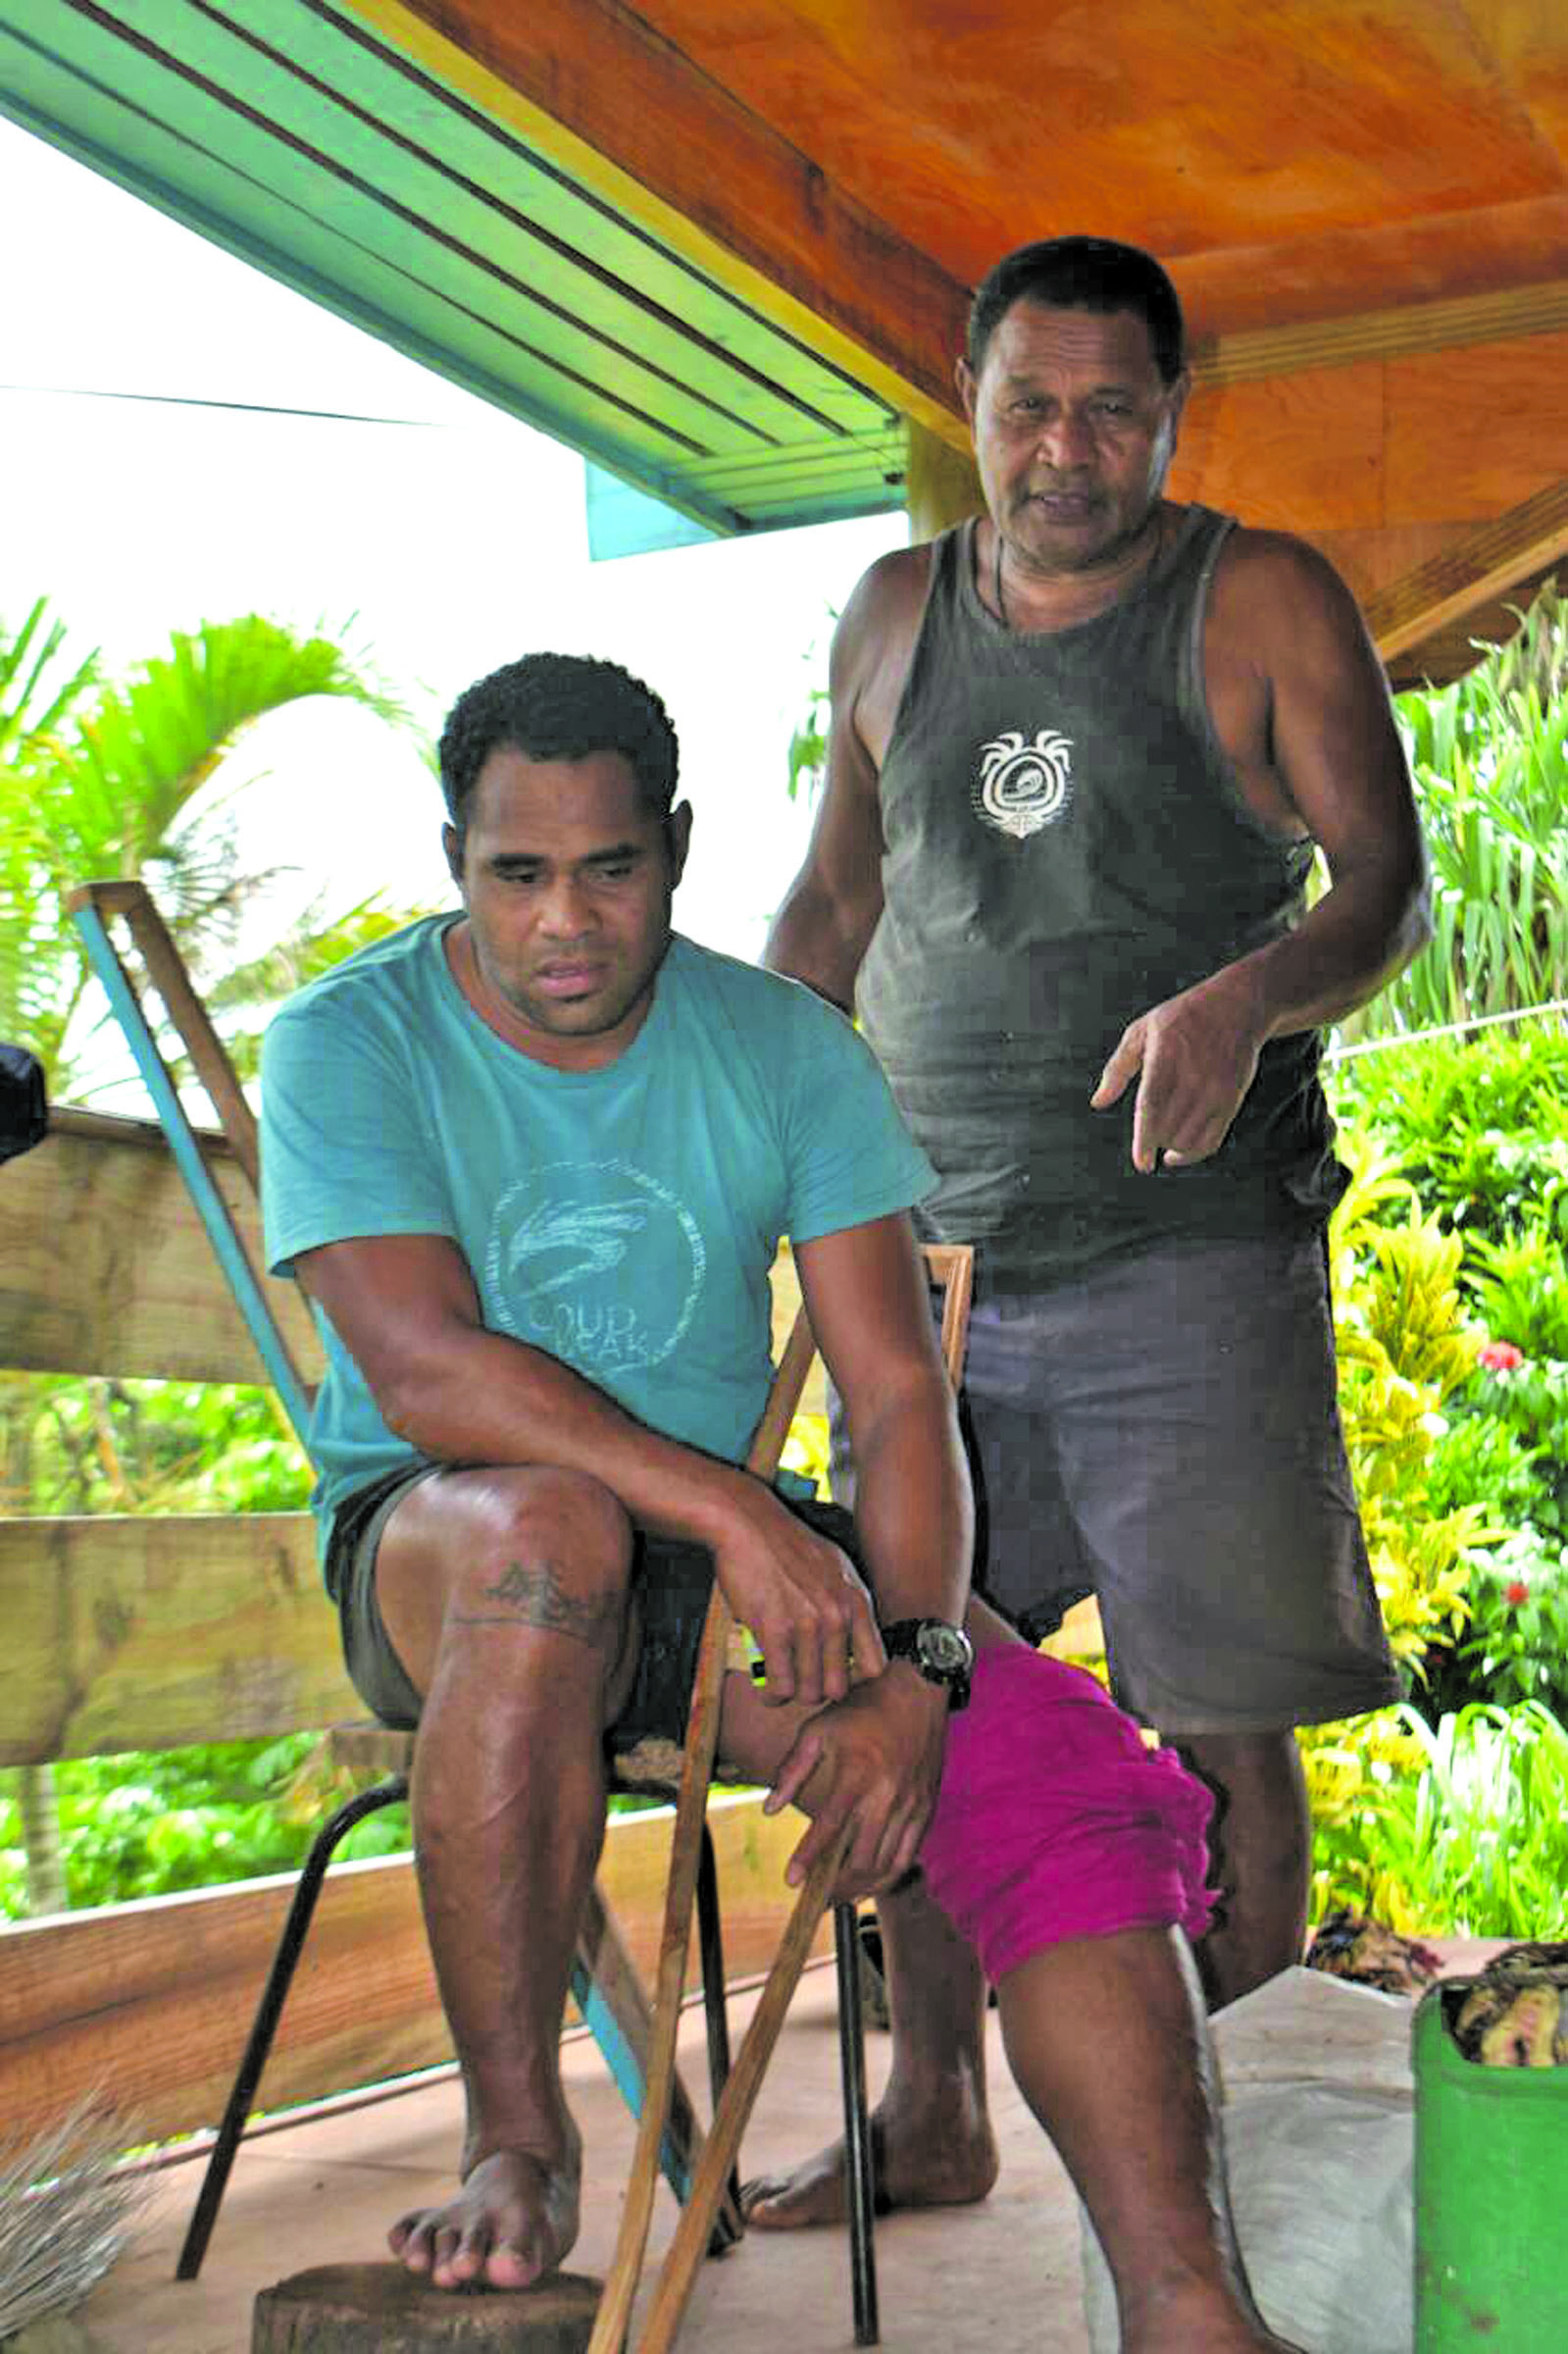 Samuela Valekuta with his son Aborosio Rokete who was injured during the search at his home in Dogoru Village on February 28, 2018.  Photo: Wati Talebula